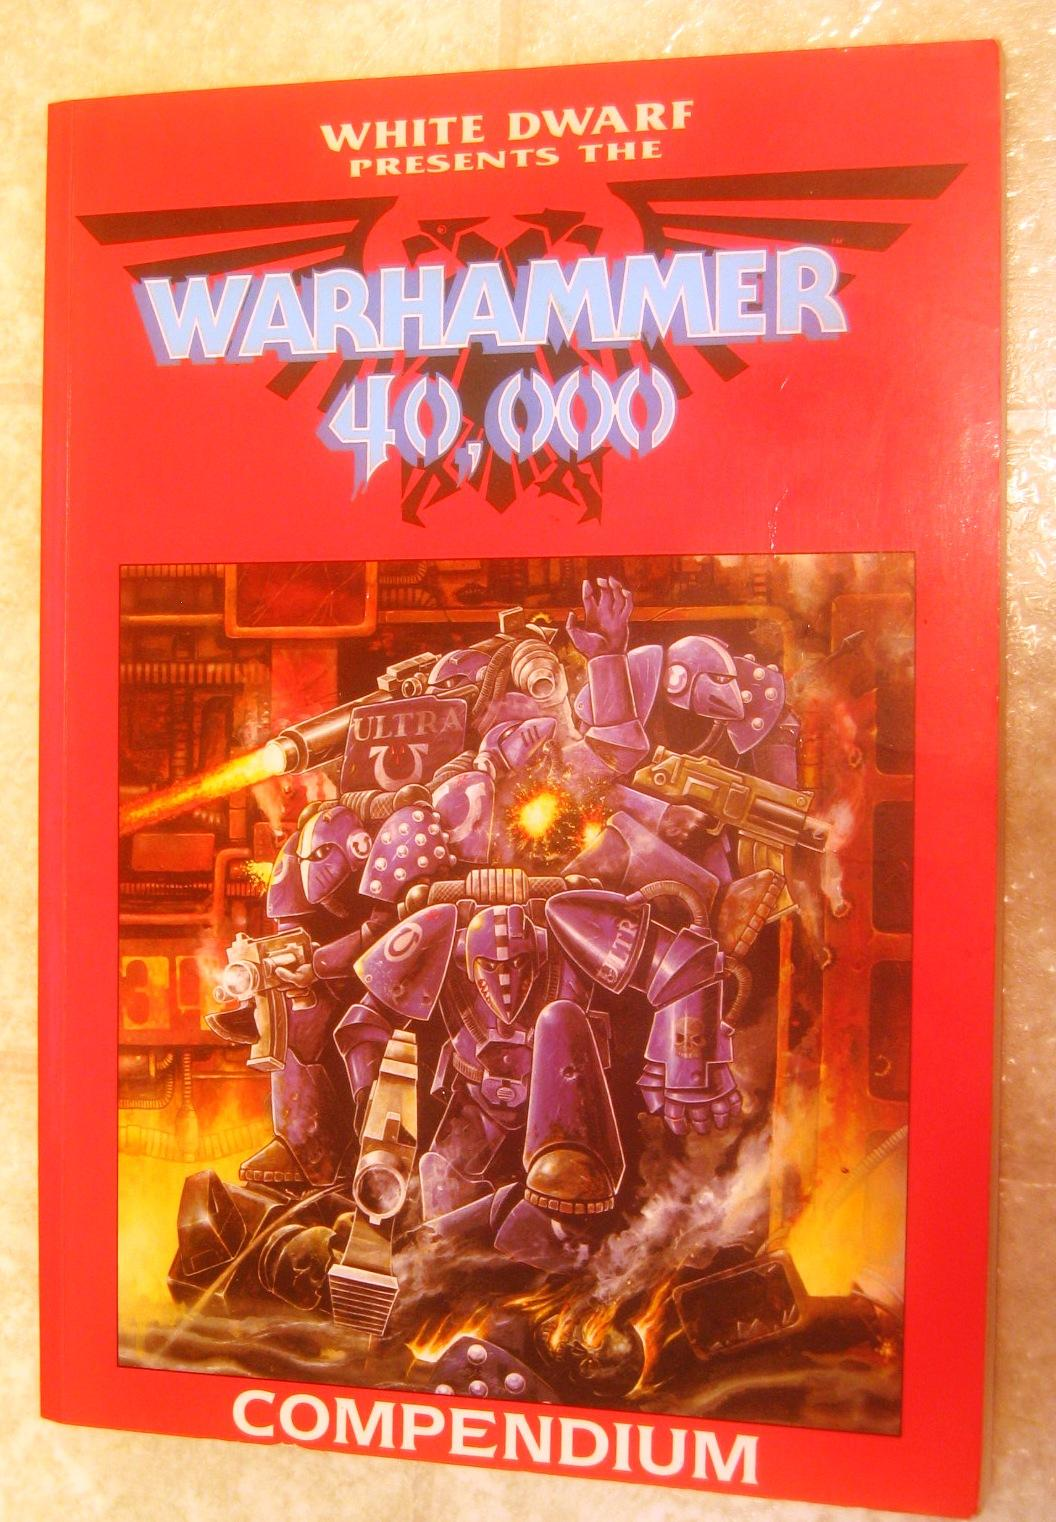 Warhammer 40,000 Compendium, front cover